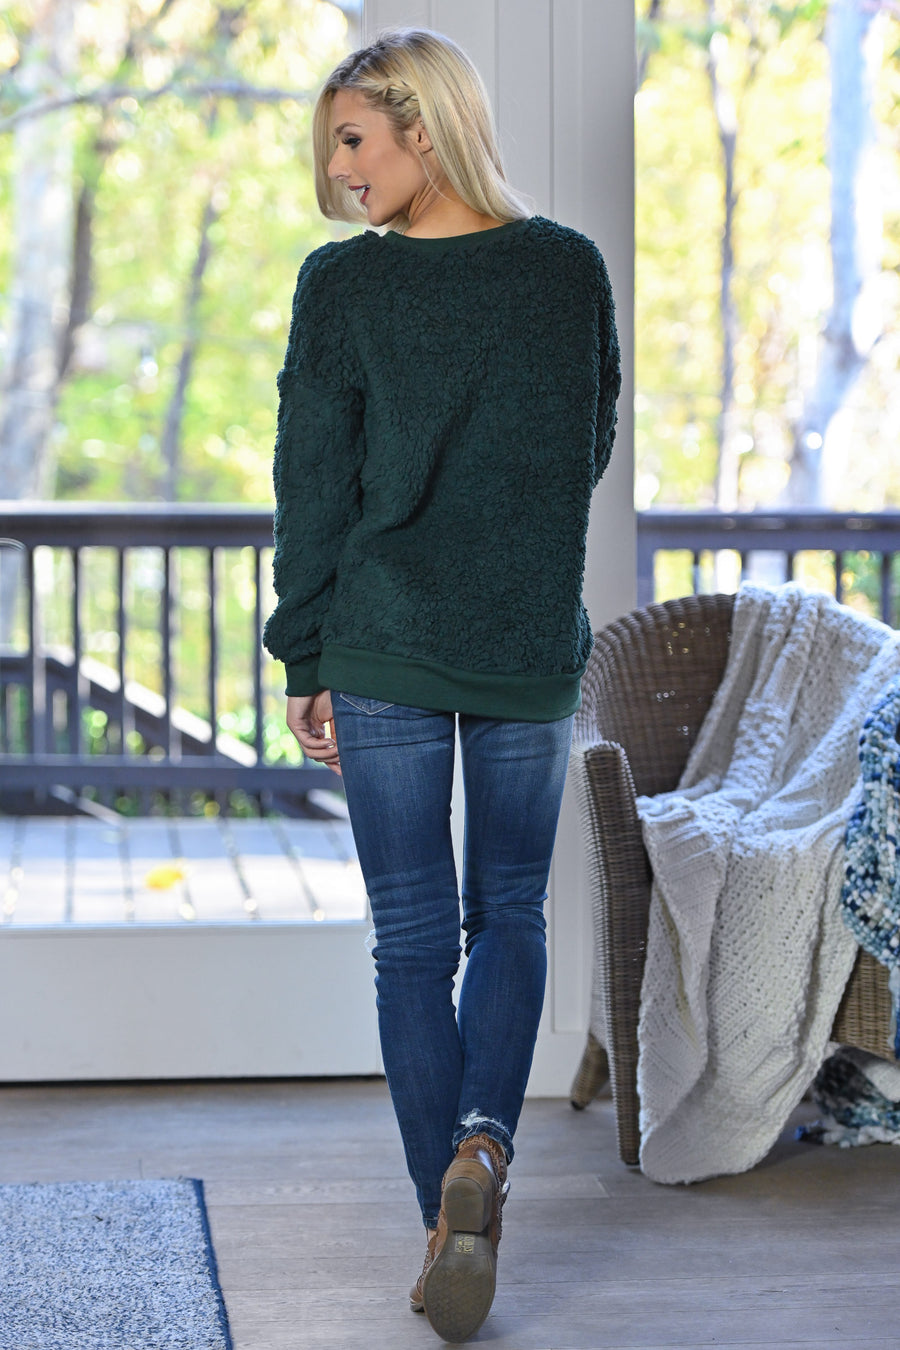 Winter Welcome Sweatshirt - Hunter Green women's soft & cozy sherpa pullover, Closet Candy Boutique 1